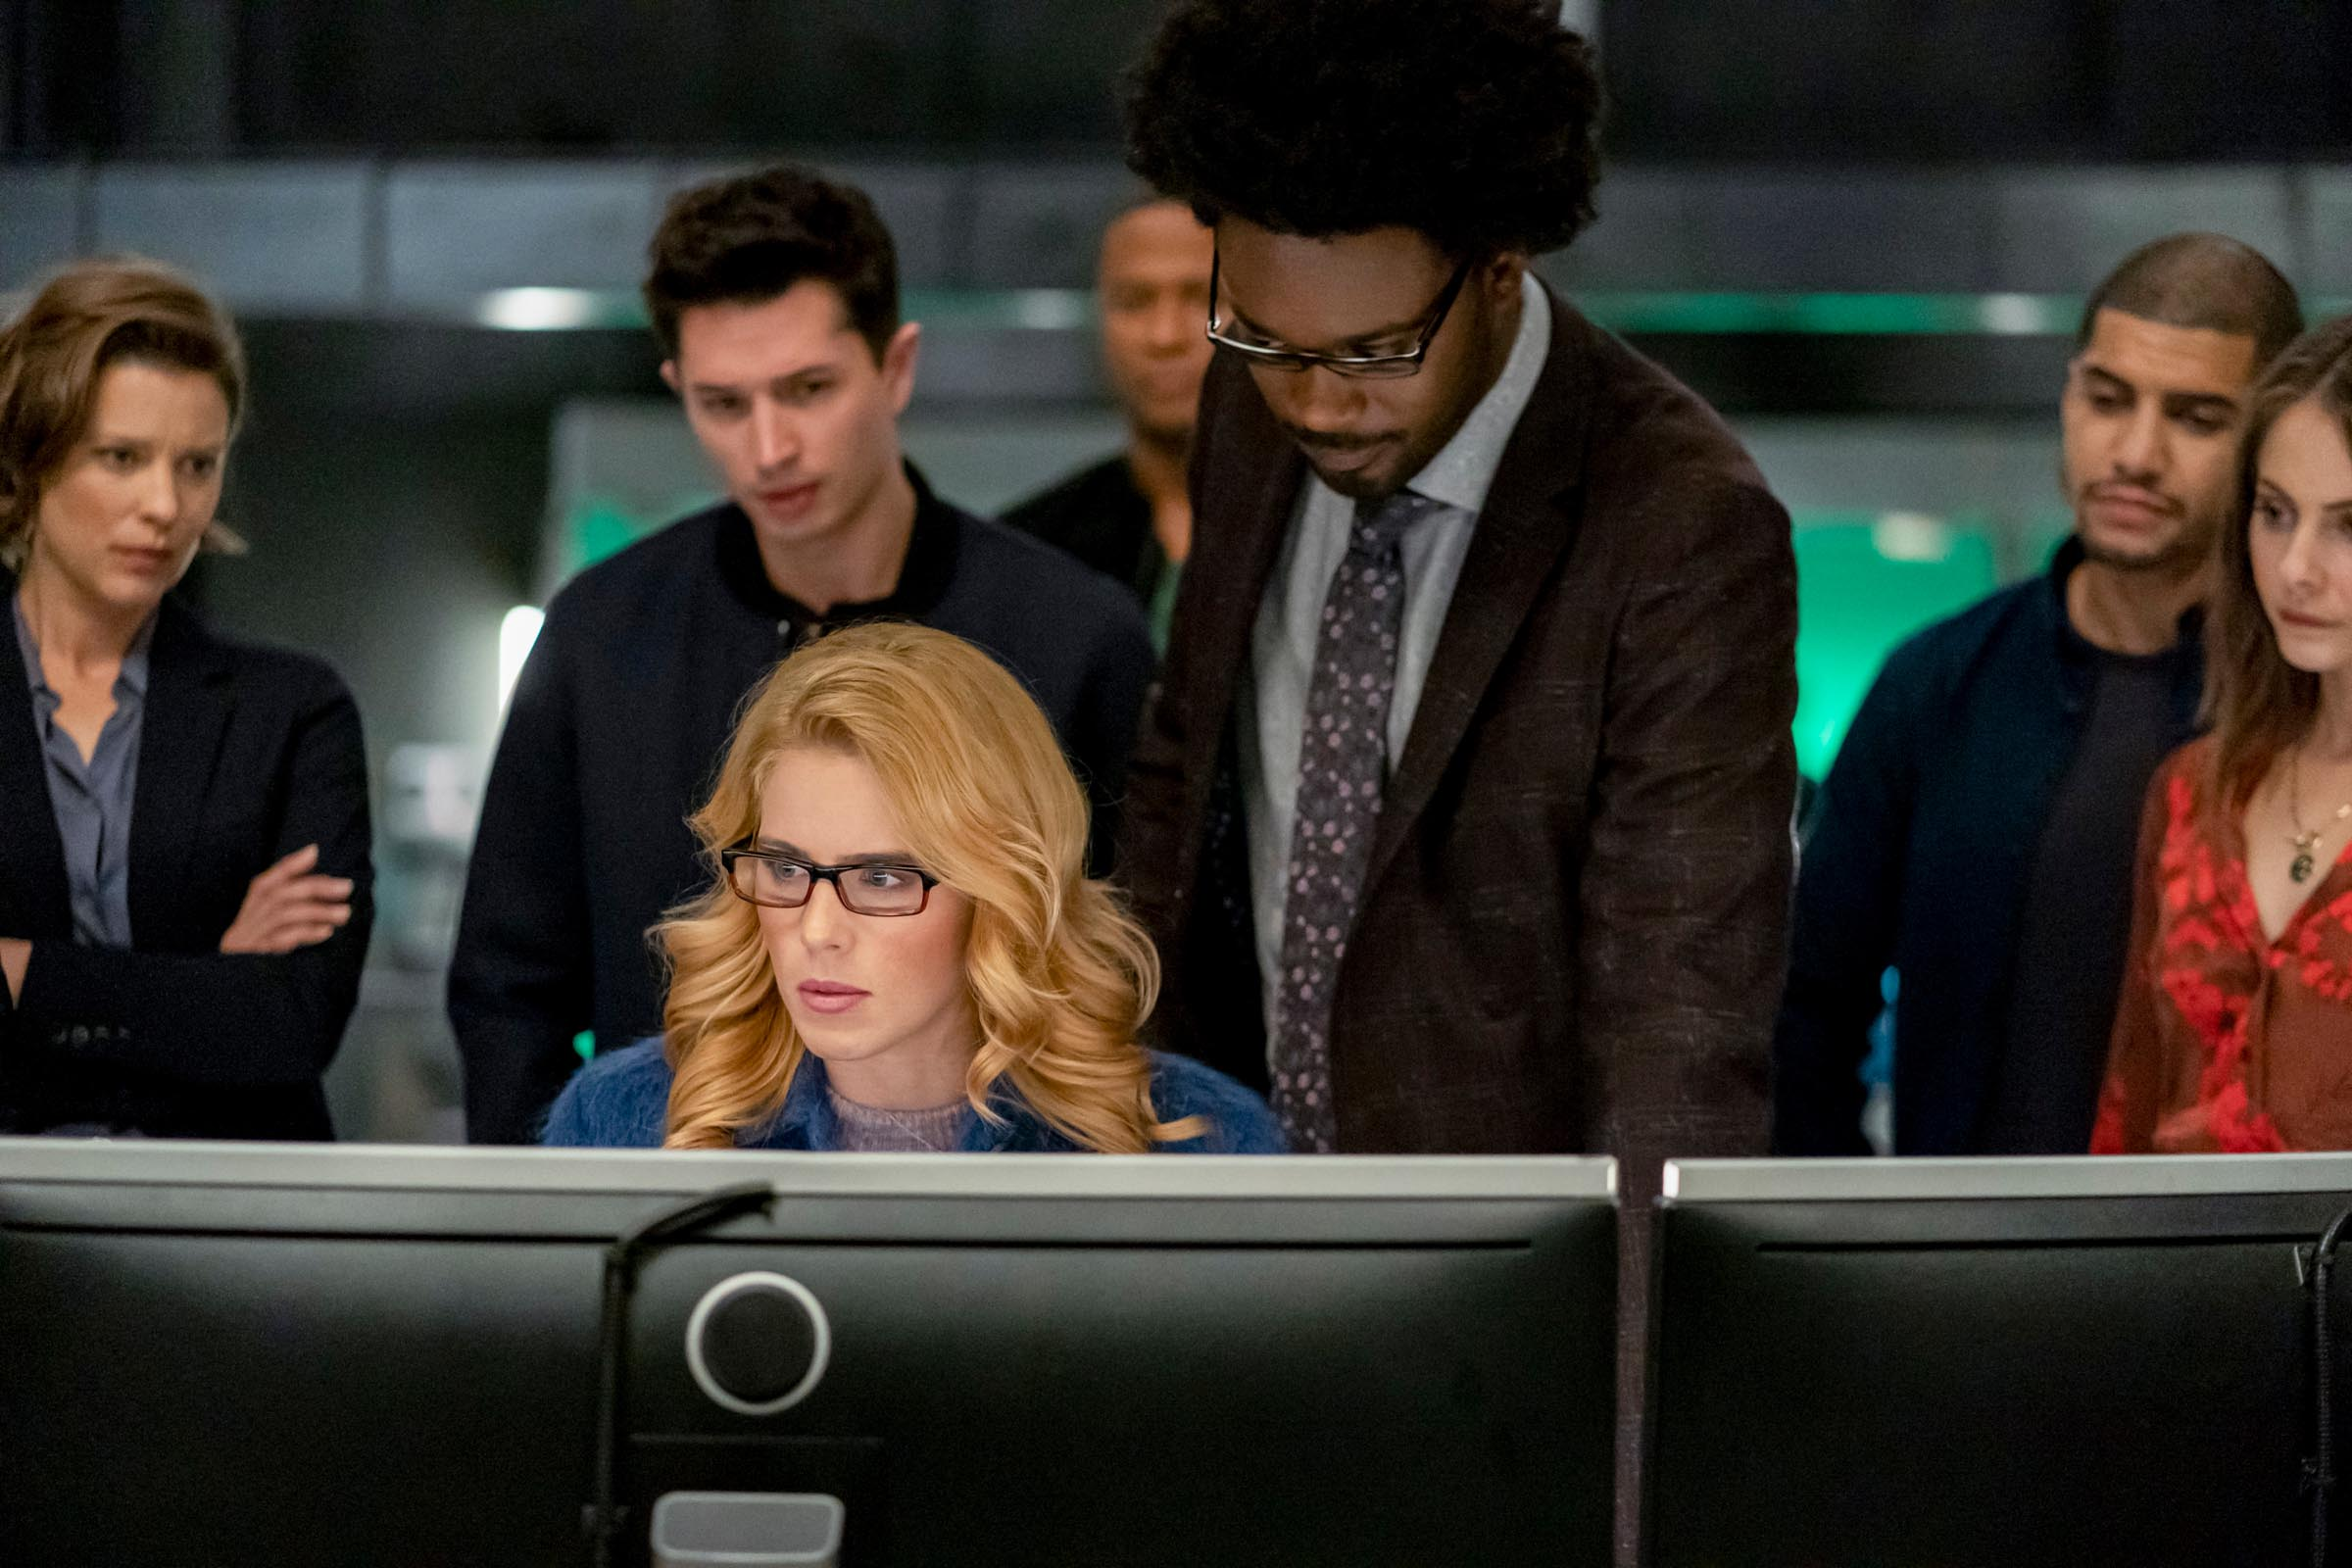 Arrow series finale photos reveal Felicity's return and major post-Crisis changes 15